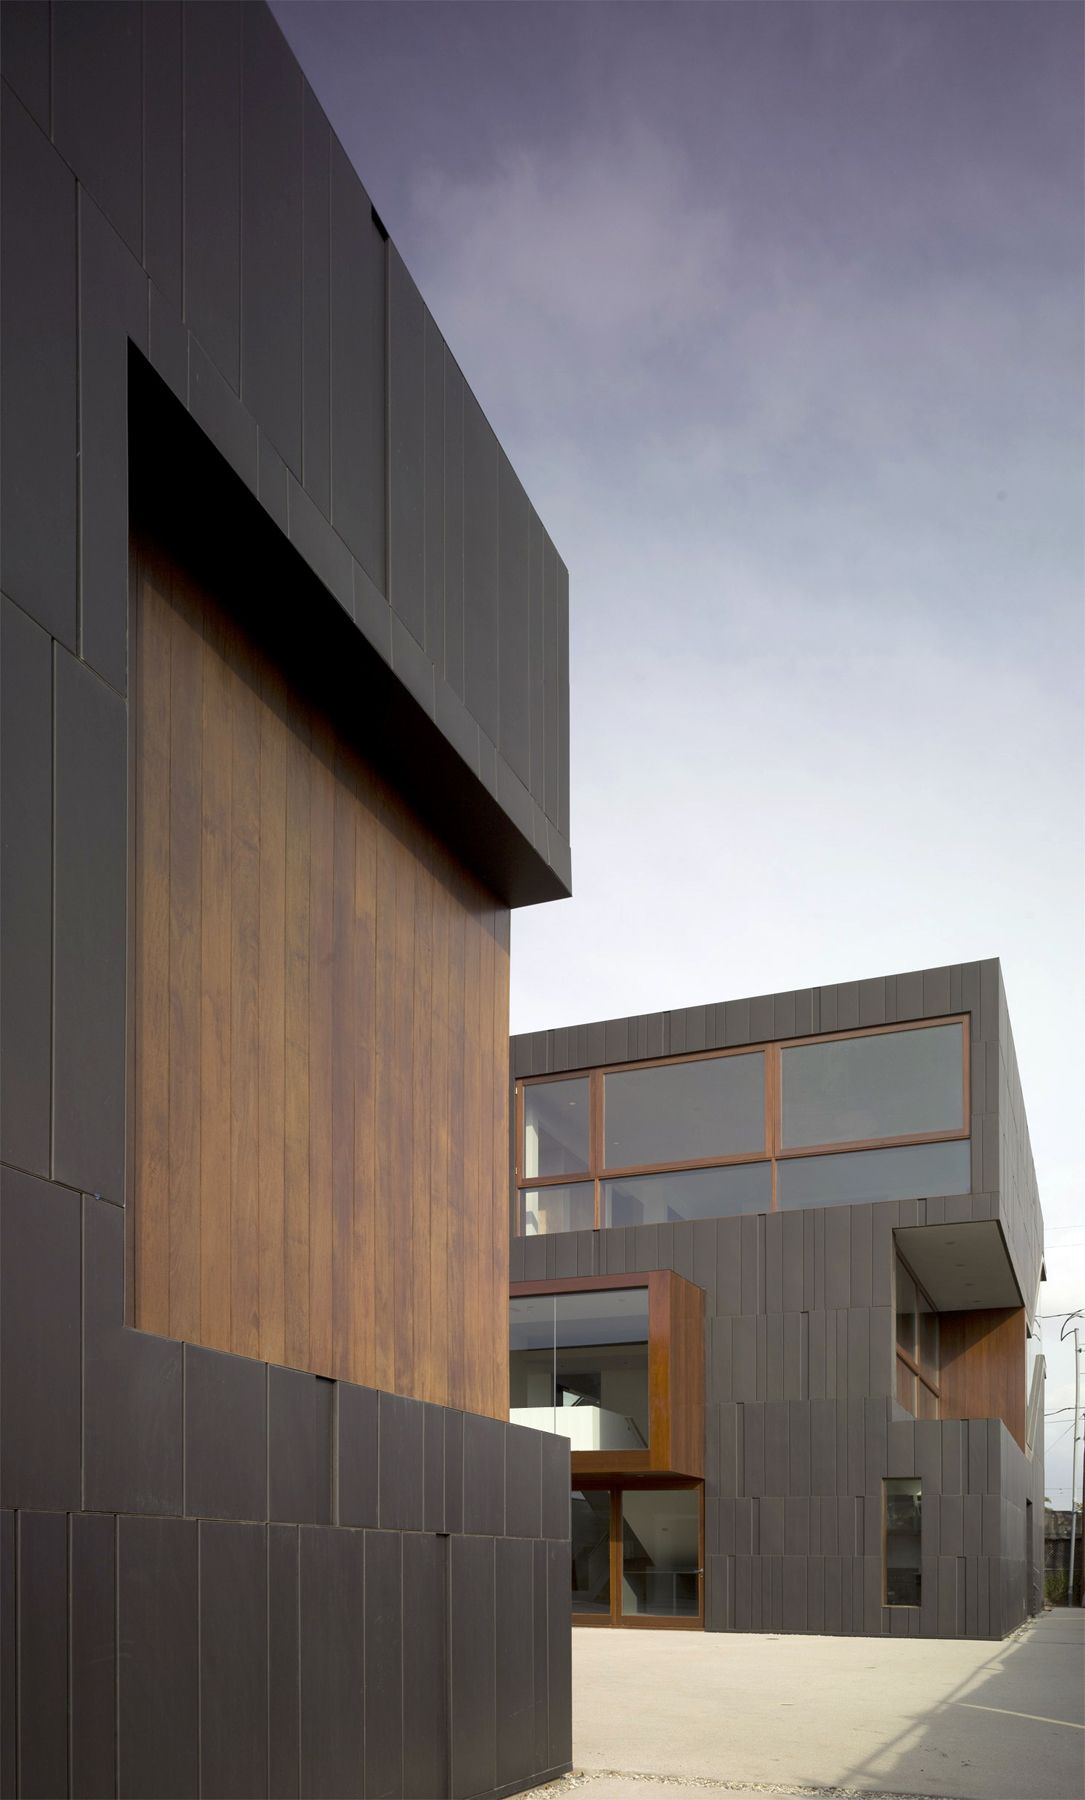 Modern Architecture Artists dwell - live outside the box in this artist's haven for $3.5m